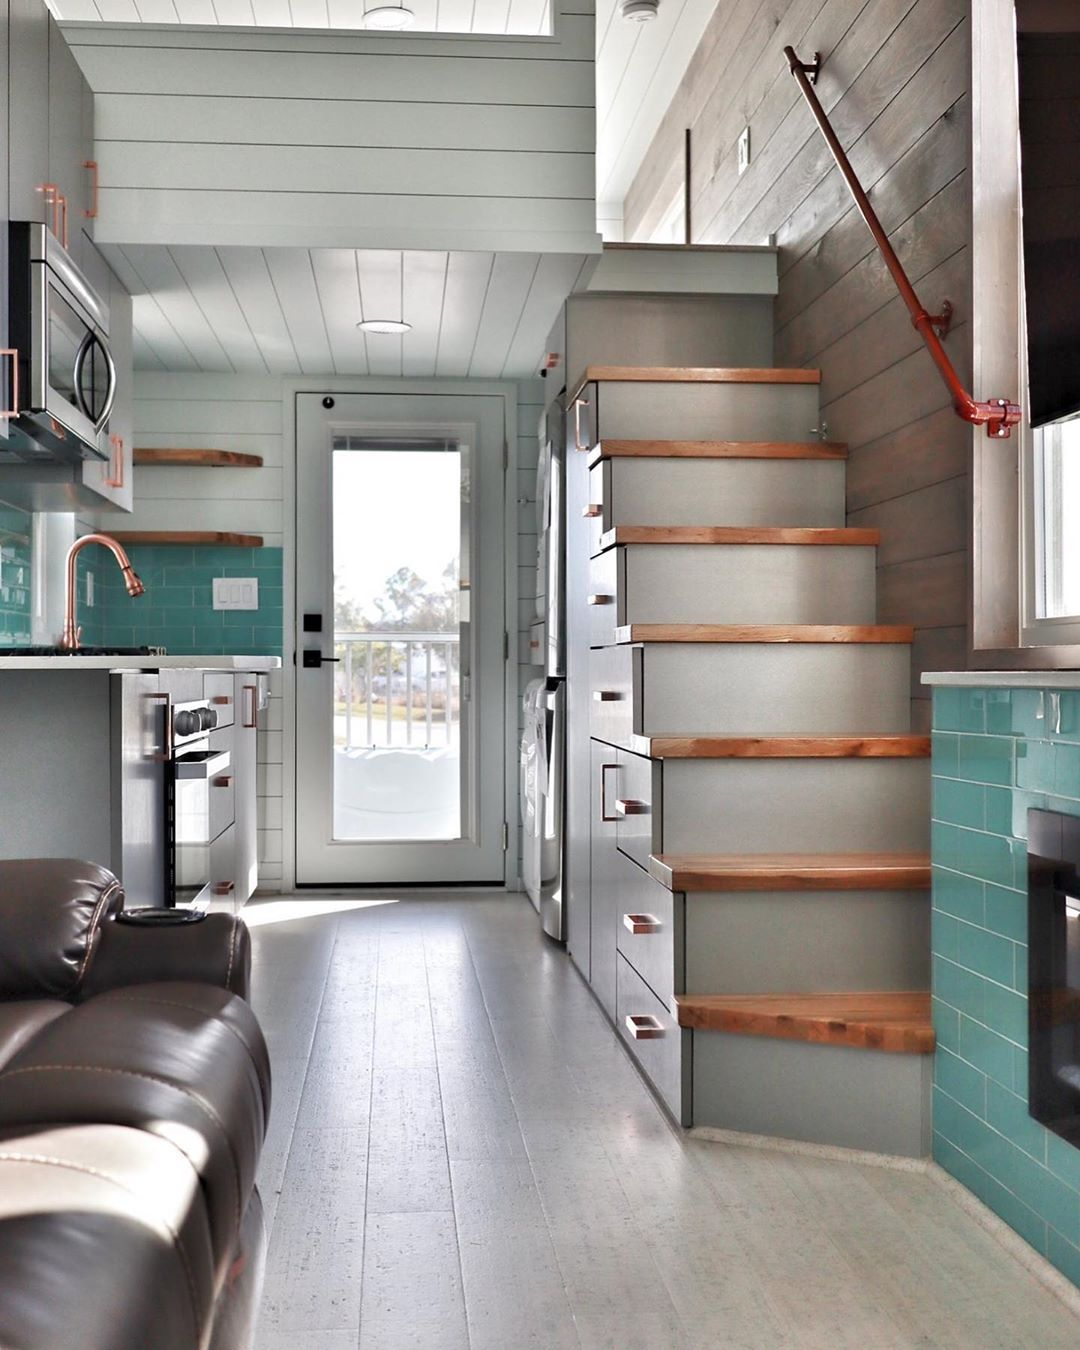 1 738 Likes 13 Comments Movable Roots Tiny Homes Movable Roots On Instagram Plenty Of R Tiny House Layout Tiny House Inspiration Tiny House Living Room